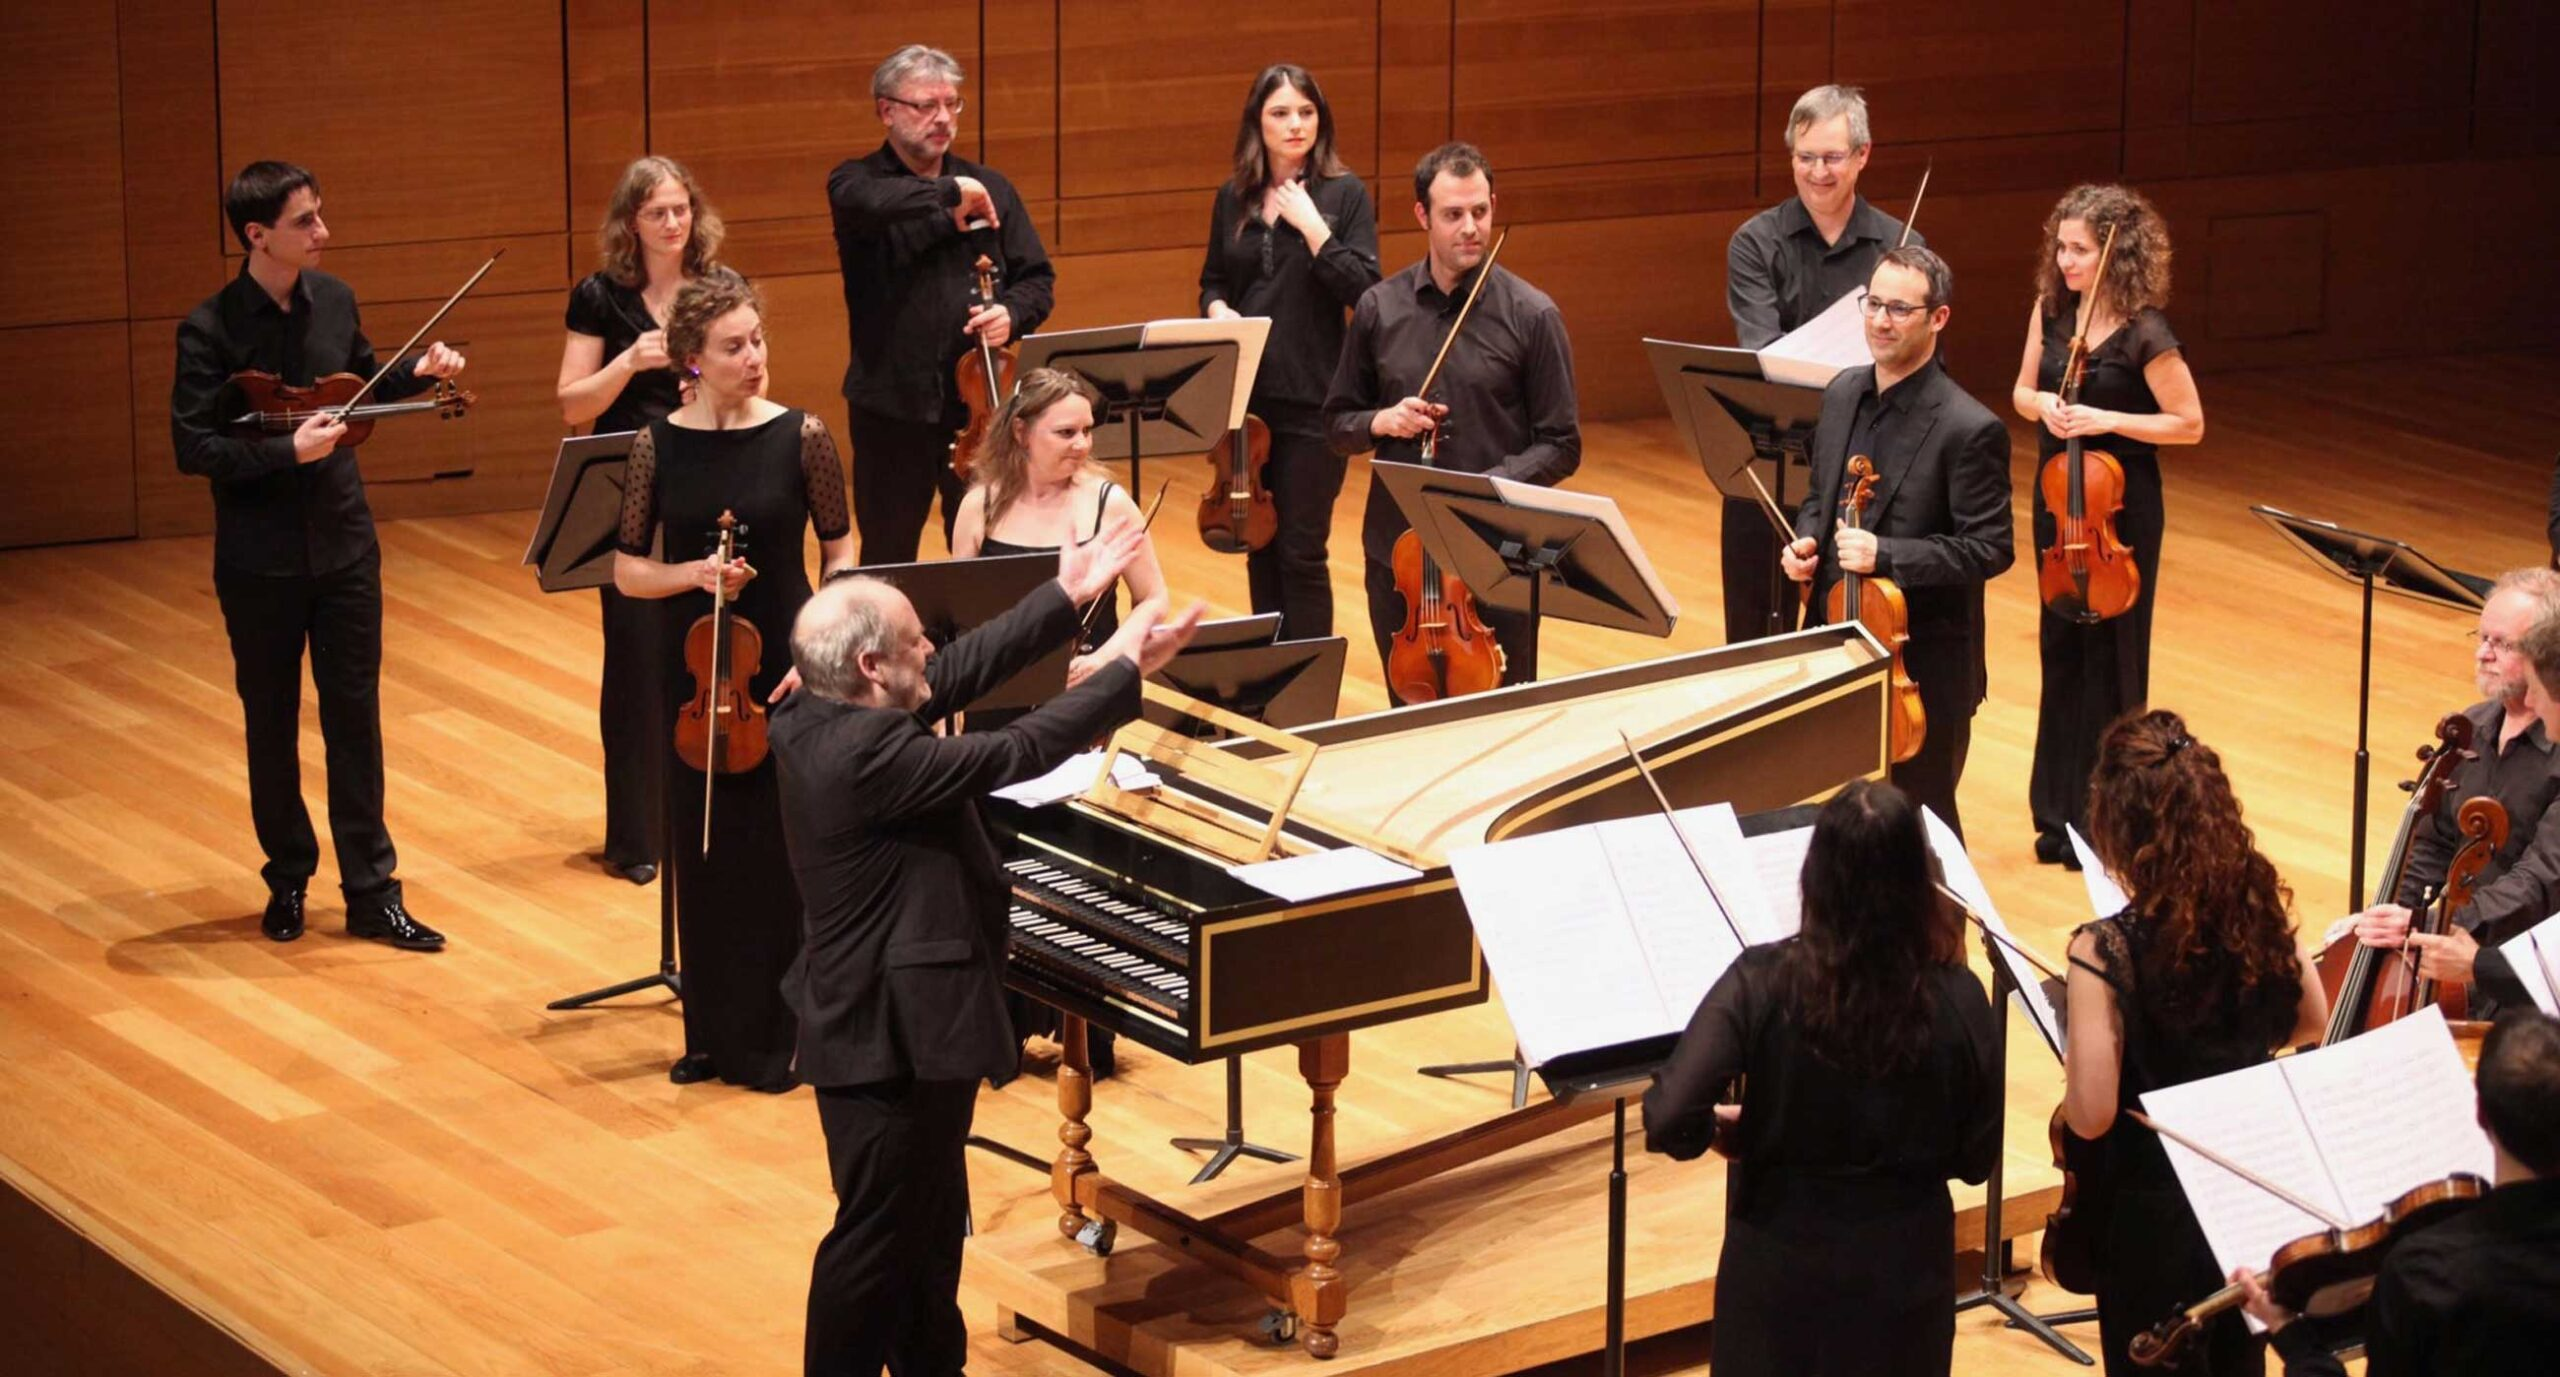 Dunedin Consort musicians on standing on stage with instruments